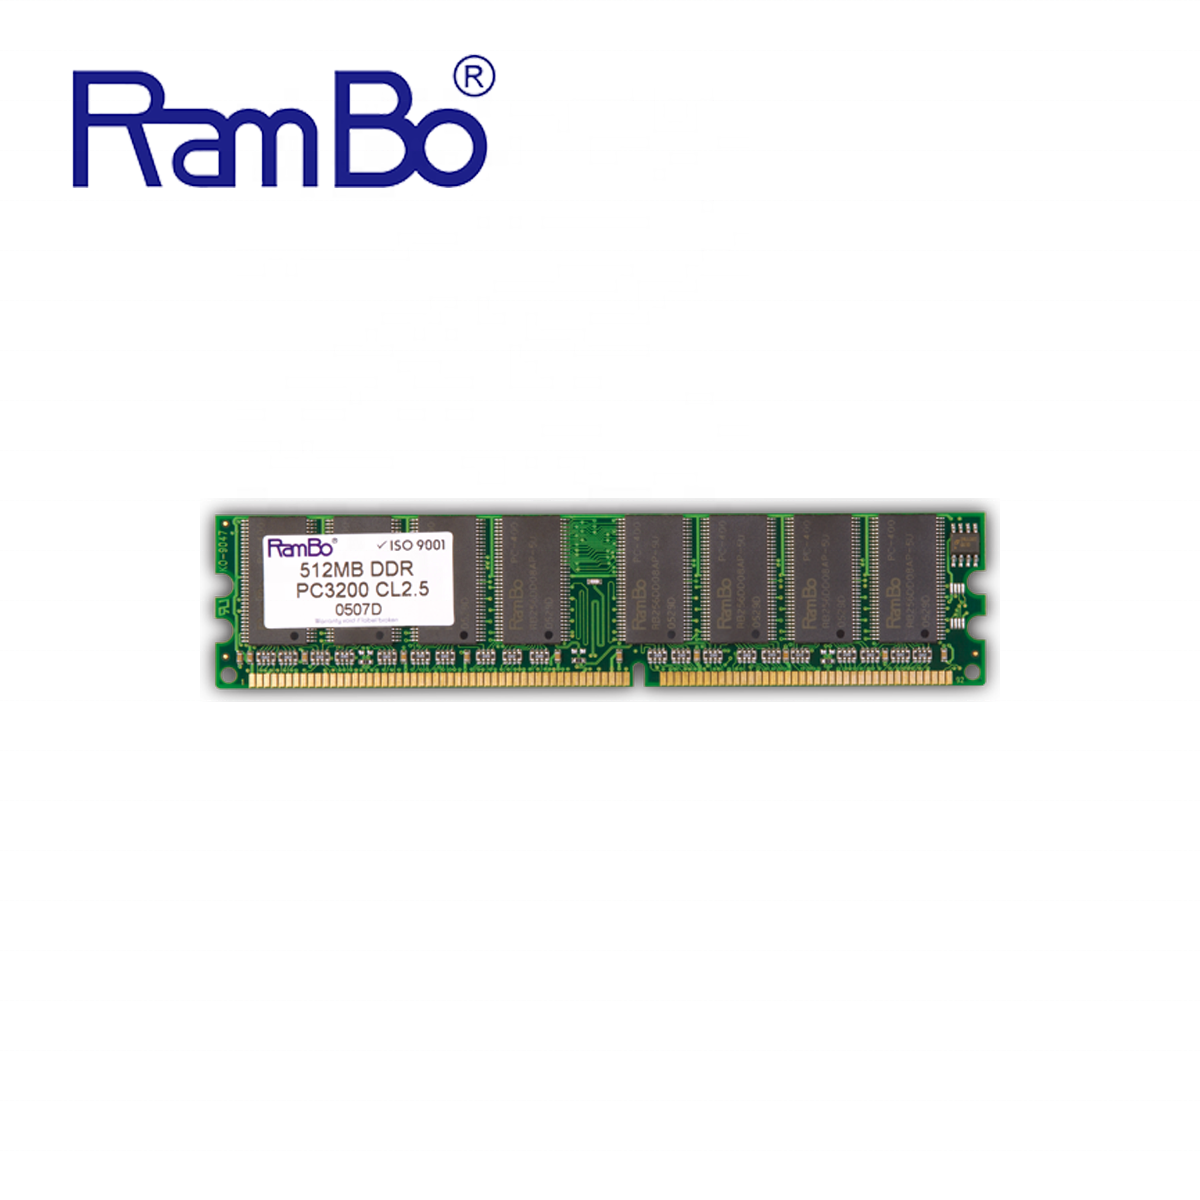 RamBo Memory Modules long dimm DDR 400mhz PC3200 CL2.5 8chips 512MB desktop ram